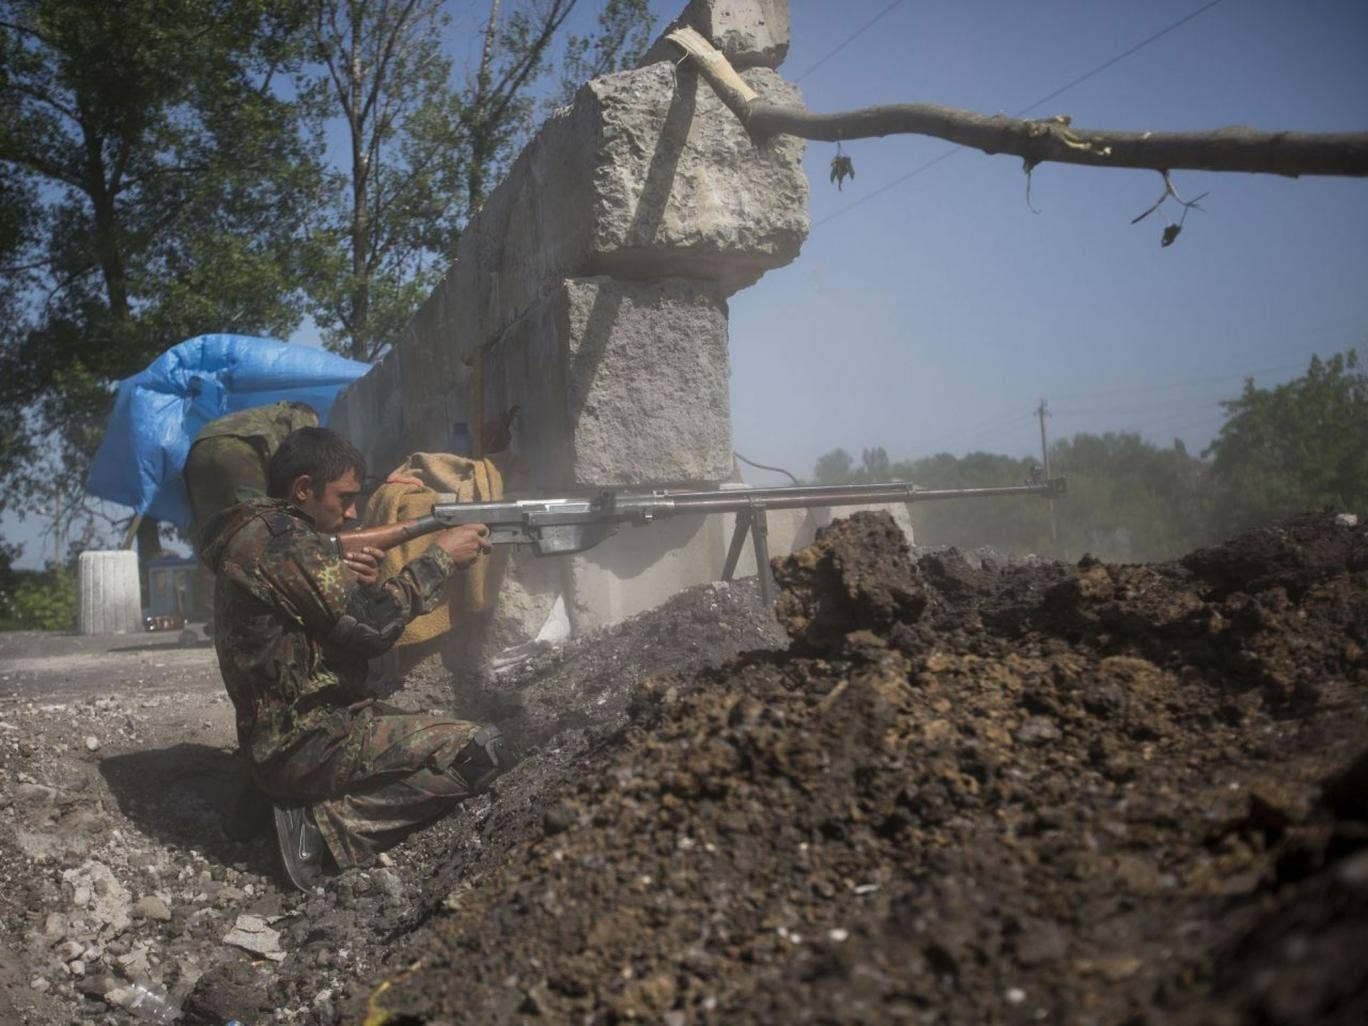 A pro-Russian militant test-fires an anti-tank weapon preparing to fight against Ukrainian government troops at a checkpoint blocking the major highway which links Kharkiv, outside  Slovyansk, eastern Ukraine, Sunday, May 18, 2014. Lawmakers and officials